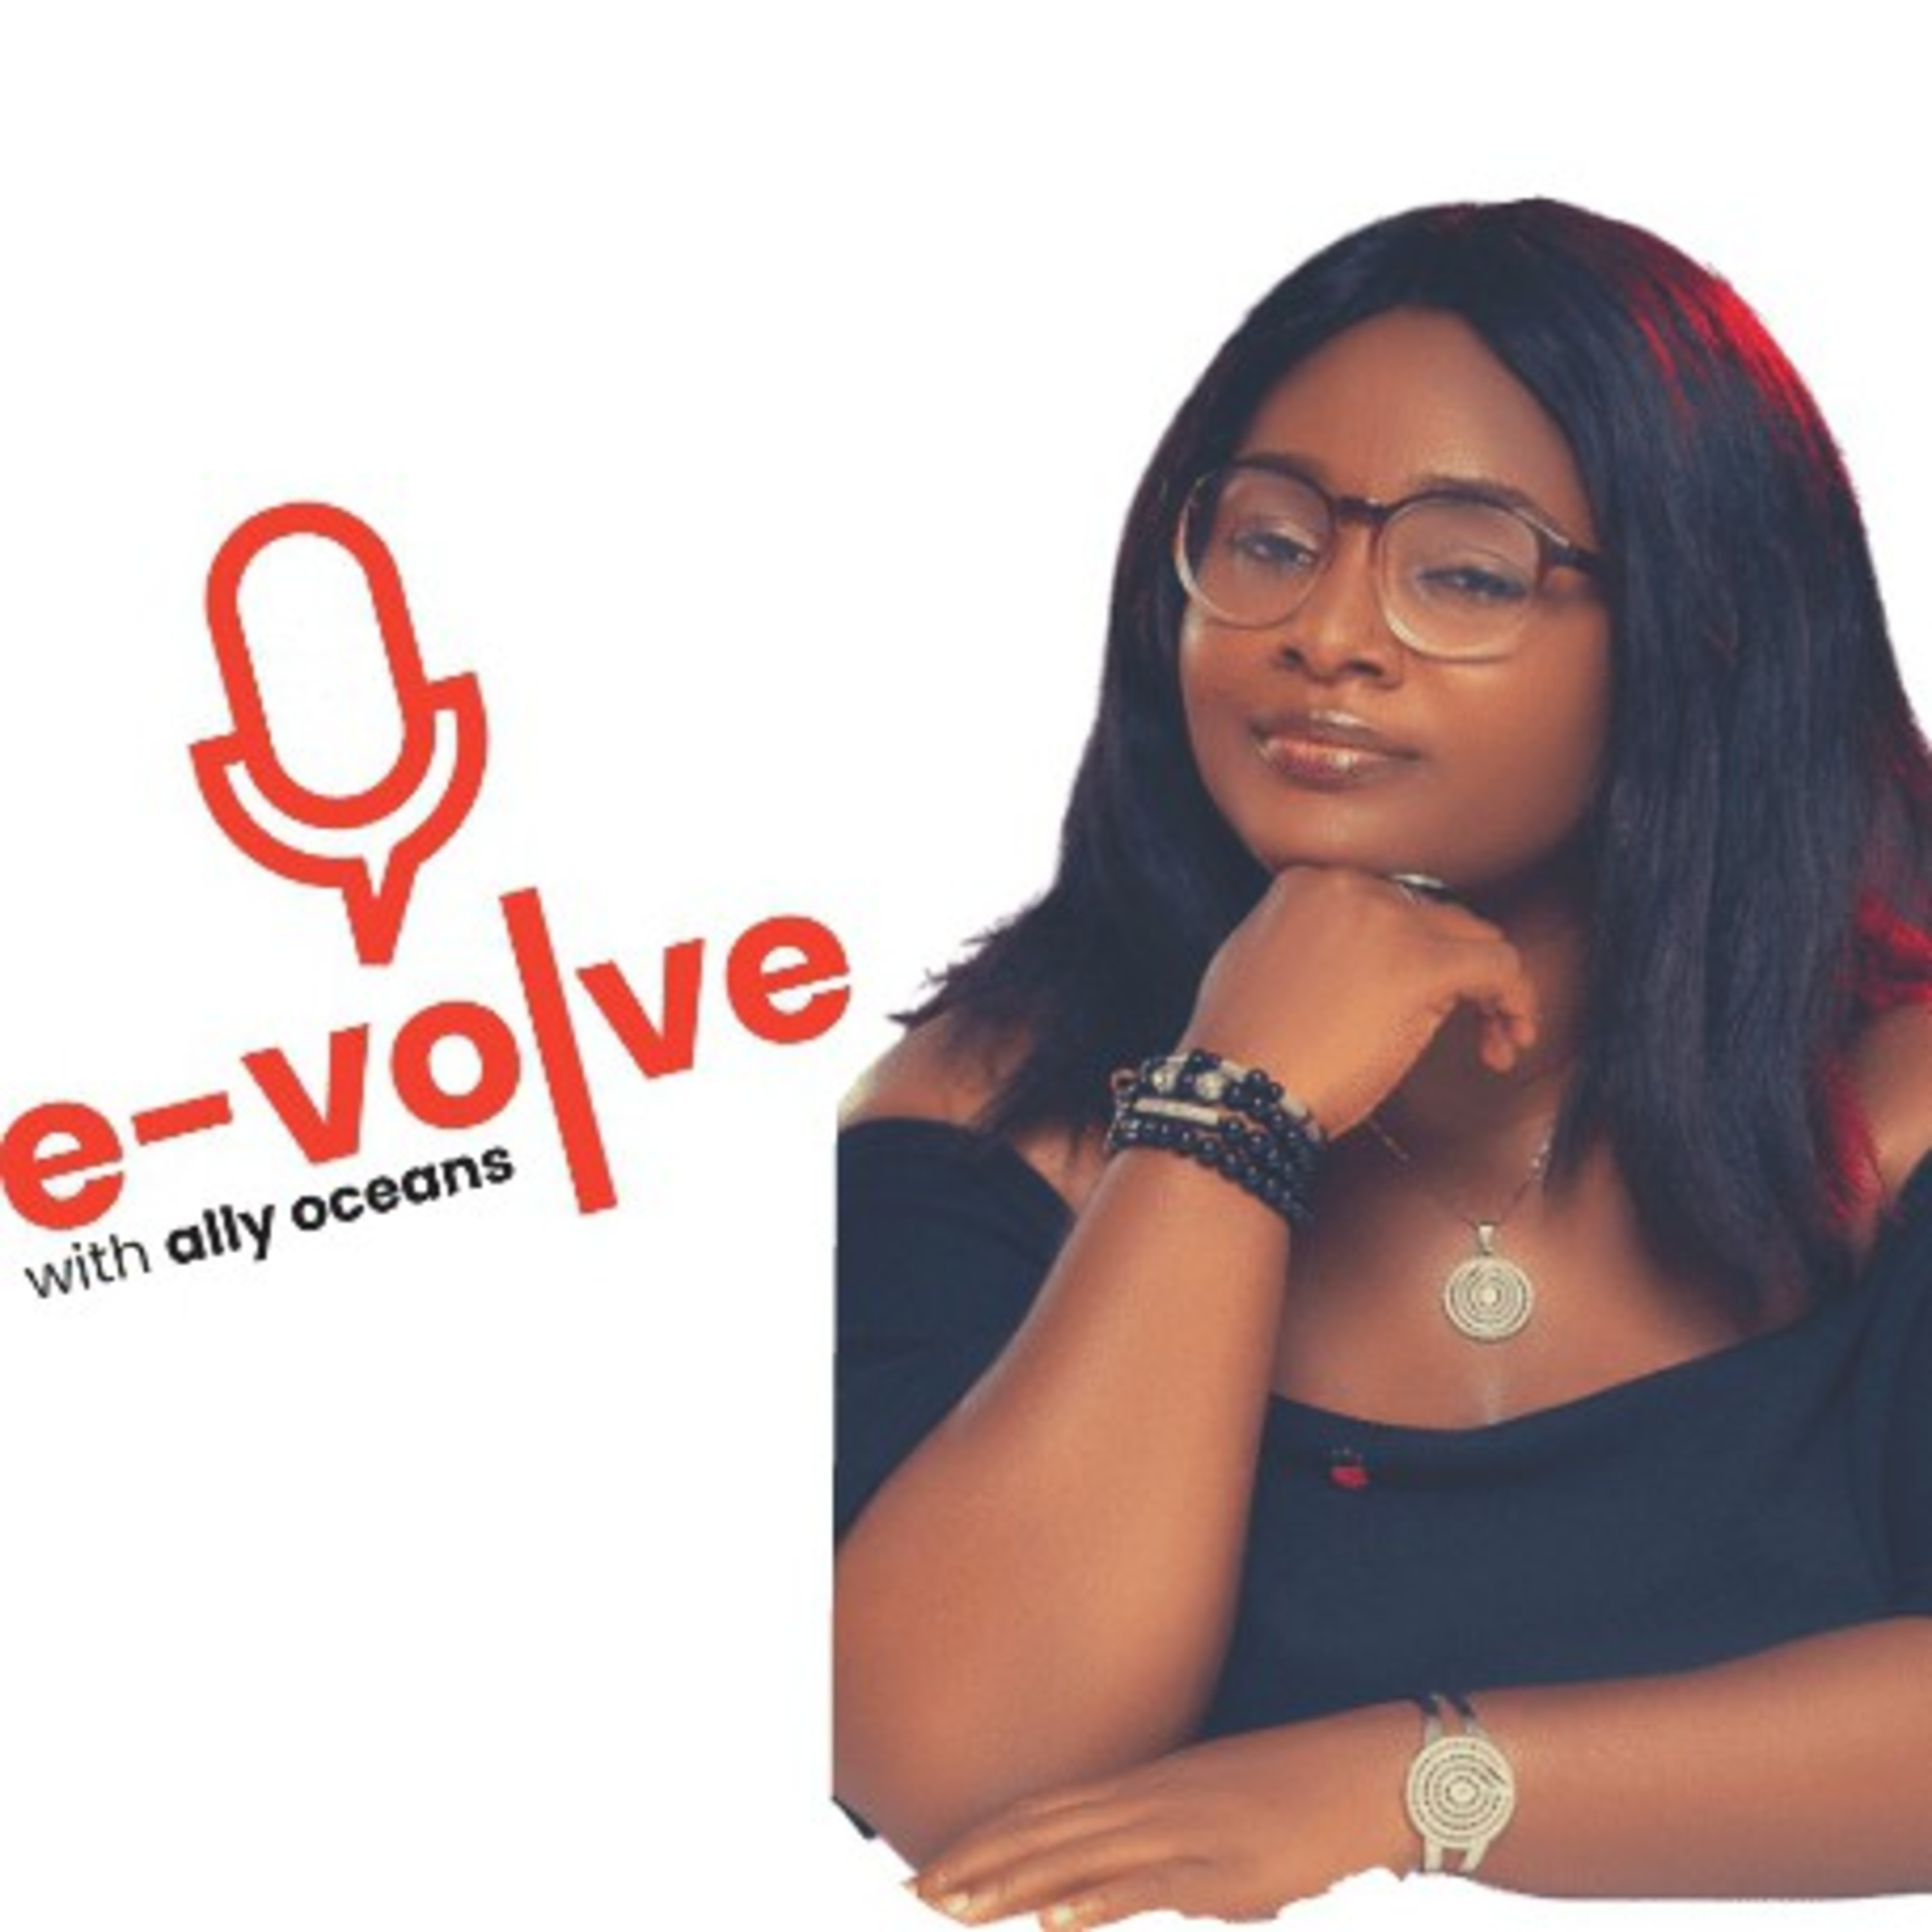 E-volve with Ally Oceans on Jamit